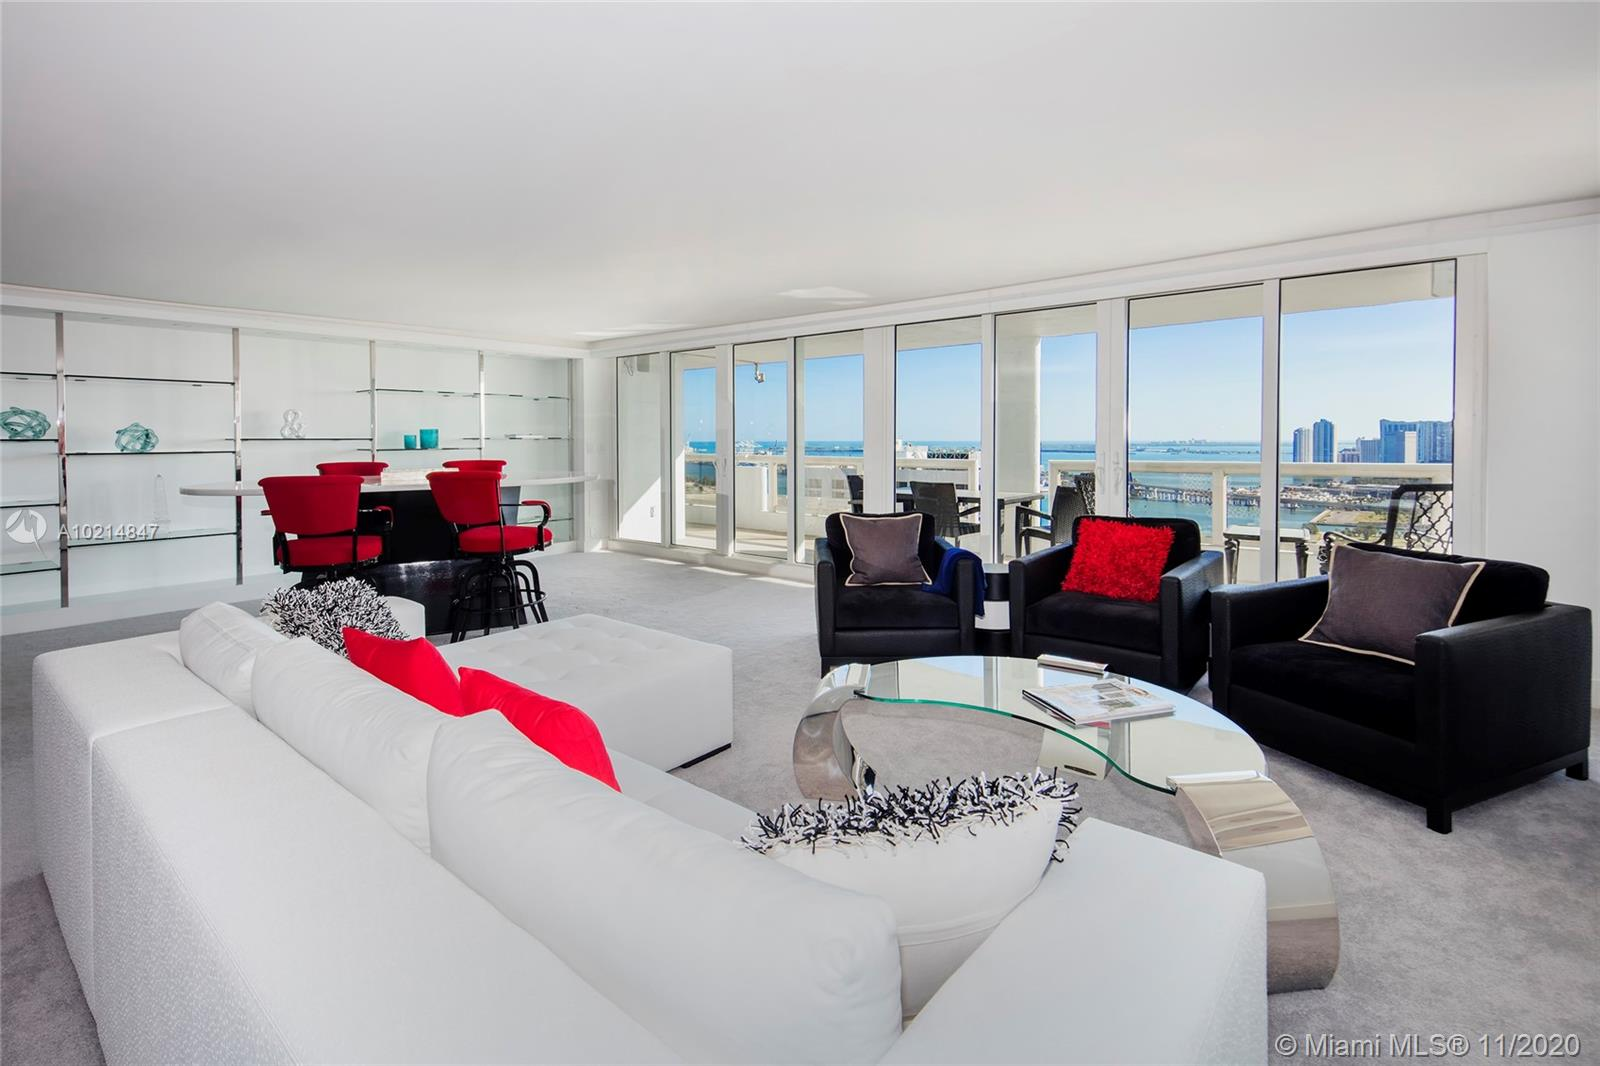 This amazing Penthouse in the /sky at The GRAND features breathtaking panoramic views over the Atlantic Ocean, Miami Beach, bay & city from every room. 4BR/3.5BA, +/-4,014 SF of interior space w/2 spacious master suites, expansive living area & private dining area, custom bar & private family/media room , gourmet kitchen w/quartz center Island. Amenities incl: room service, beauty parlor, restaurants, dry cleaner, stores, marina & more. Close to the Performing Arts Center.